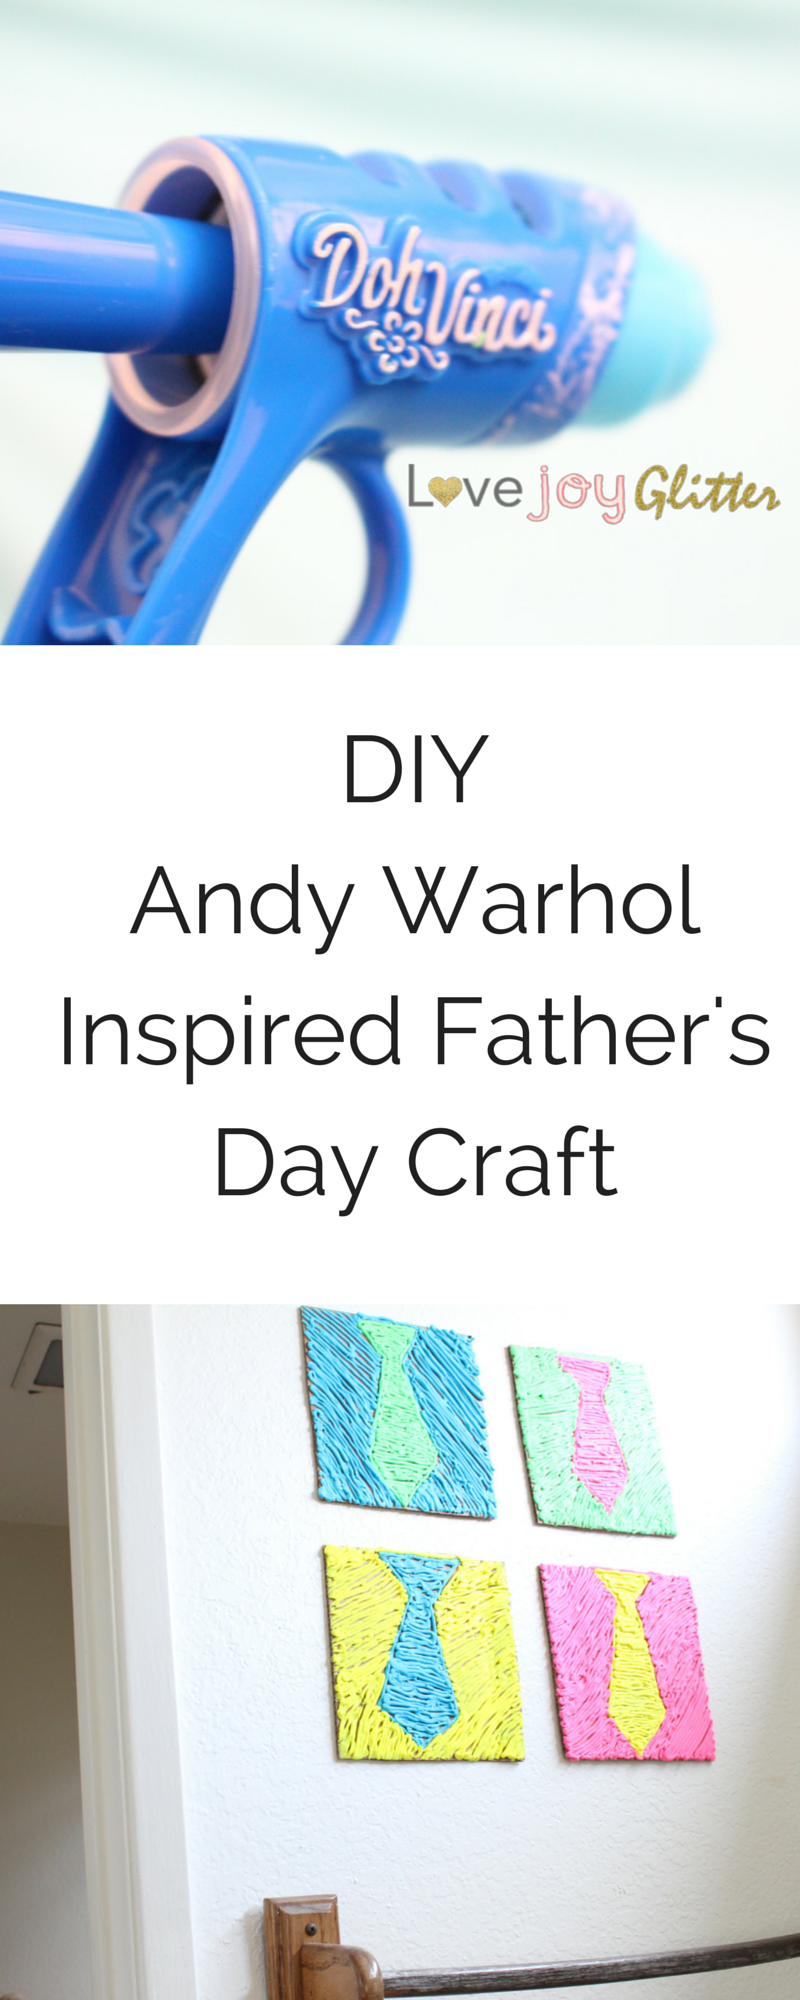 Cute craft idea for kids to make for Father's Day! Love it!